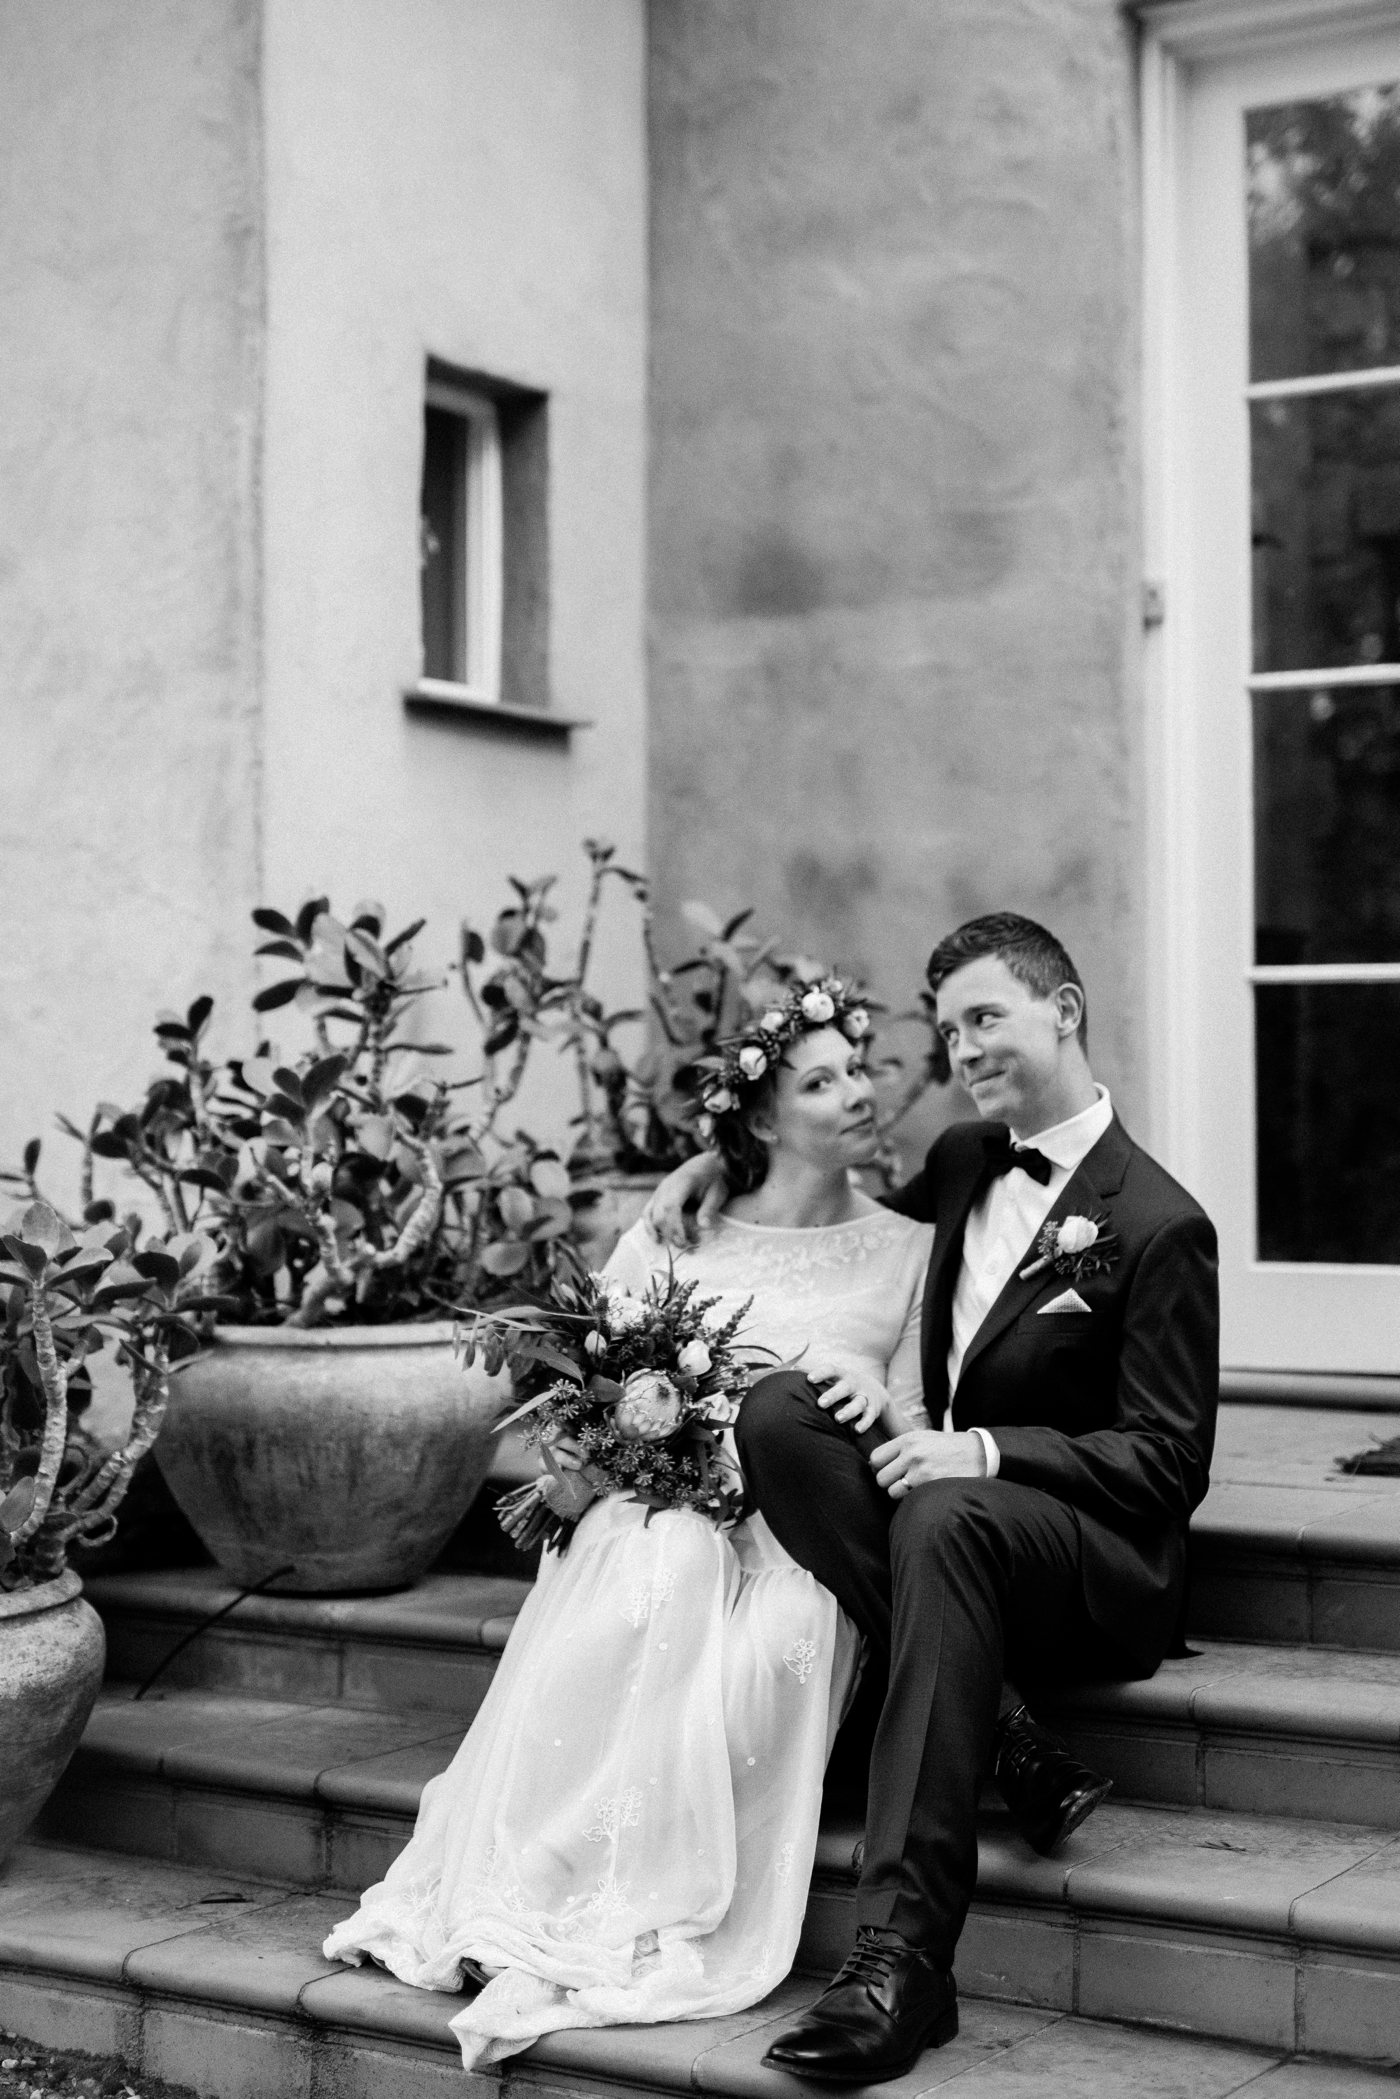 Jo & Aaron - Natural Wedding Photography in Adelaide - Beautiful, modern wedding photographer - Al Ru Farm Wedding Photography - Katherine Schultz_0034.jpg